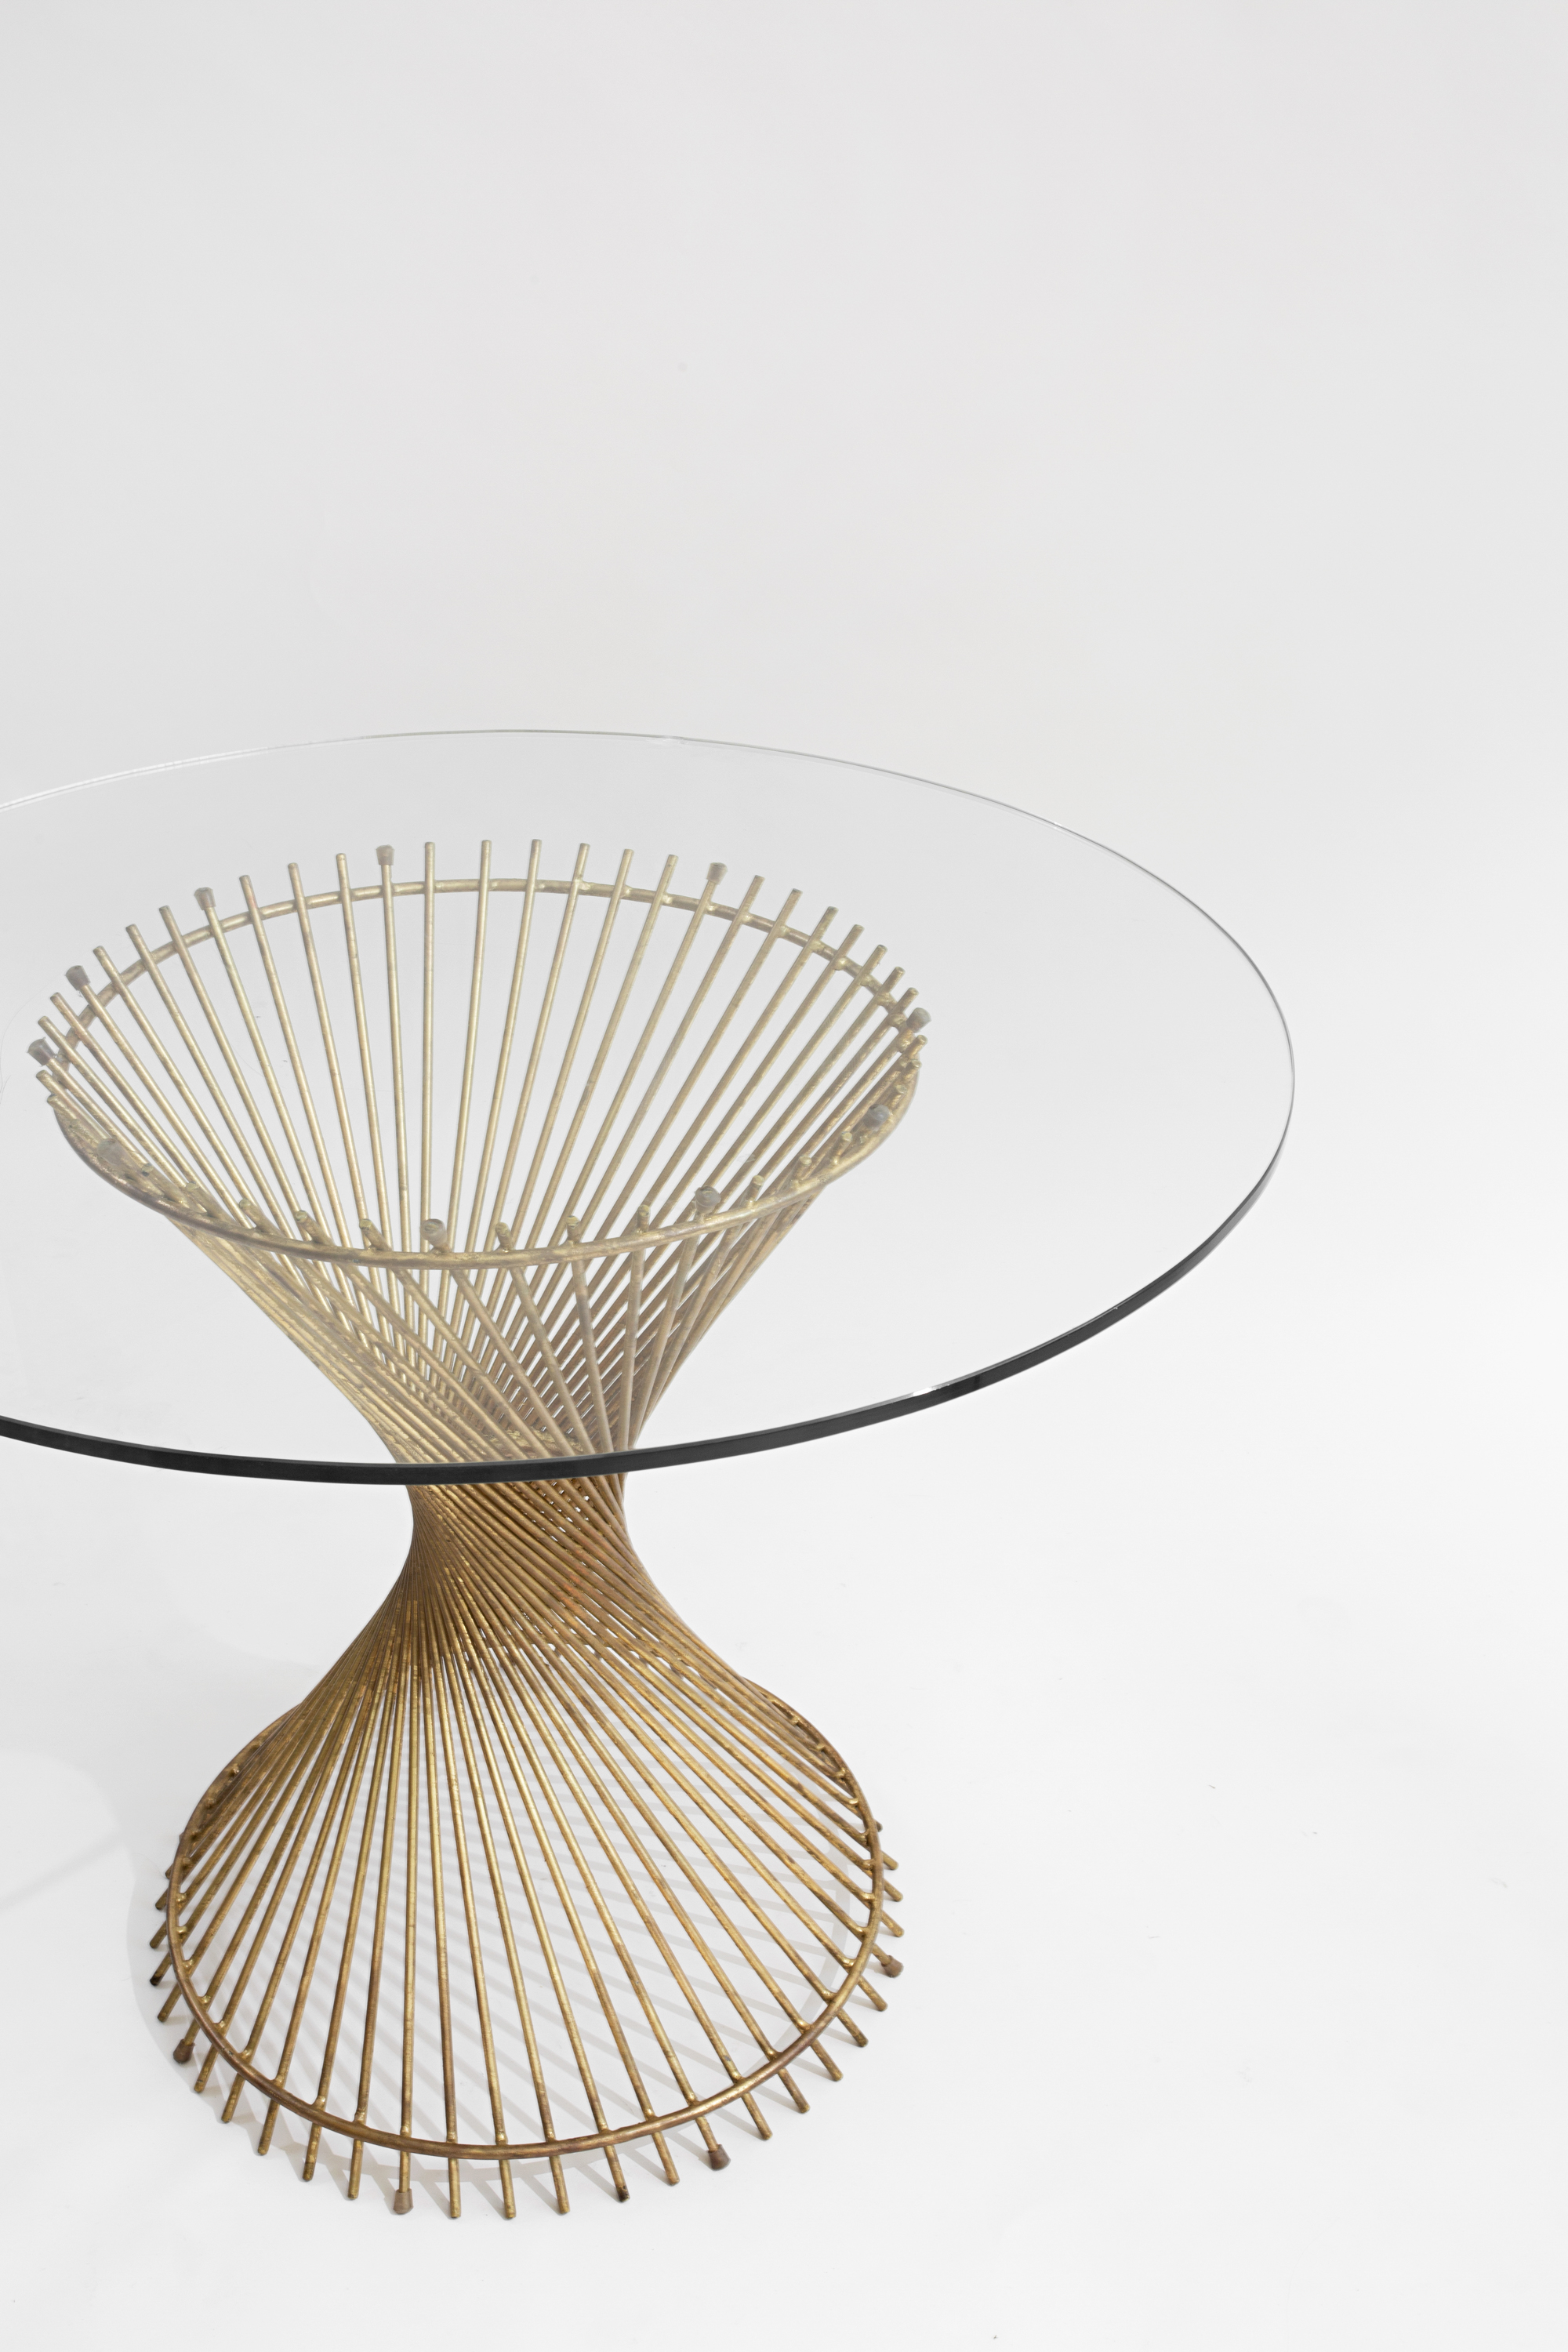 mayker-design-modern-nashville-inventory-visuals-spokes-entry-table-02-web-res.jpg